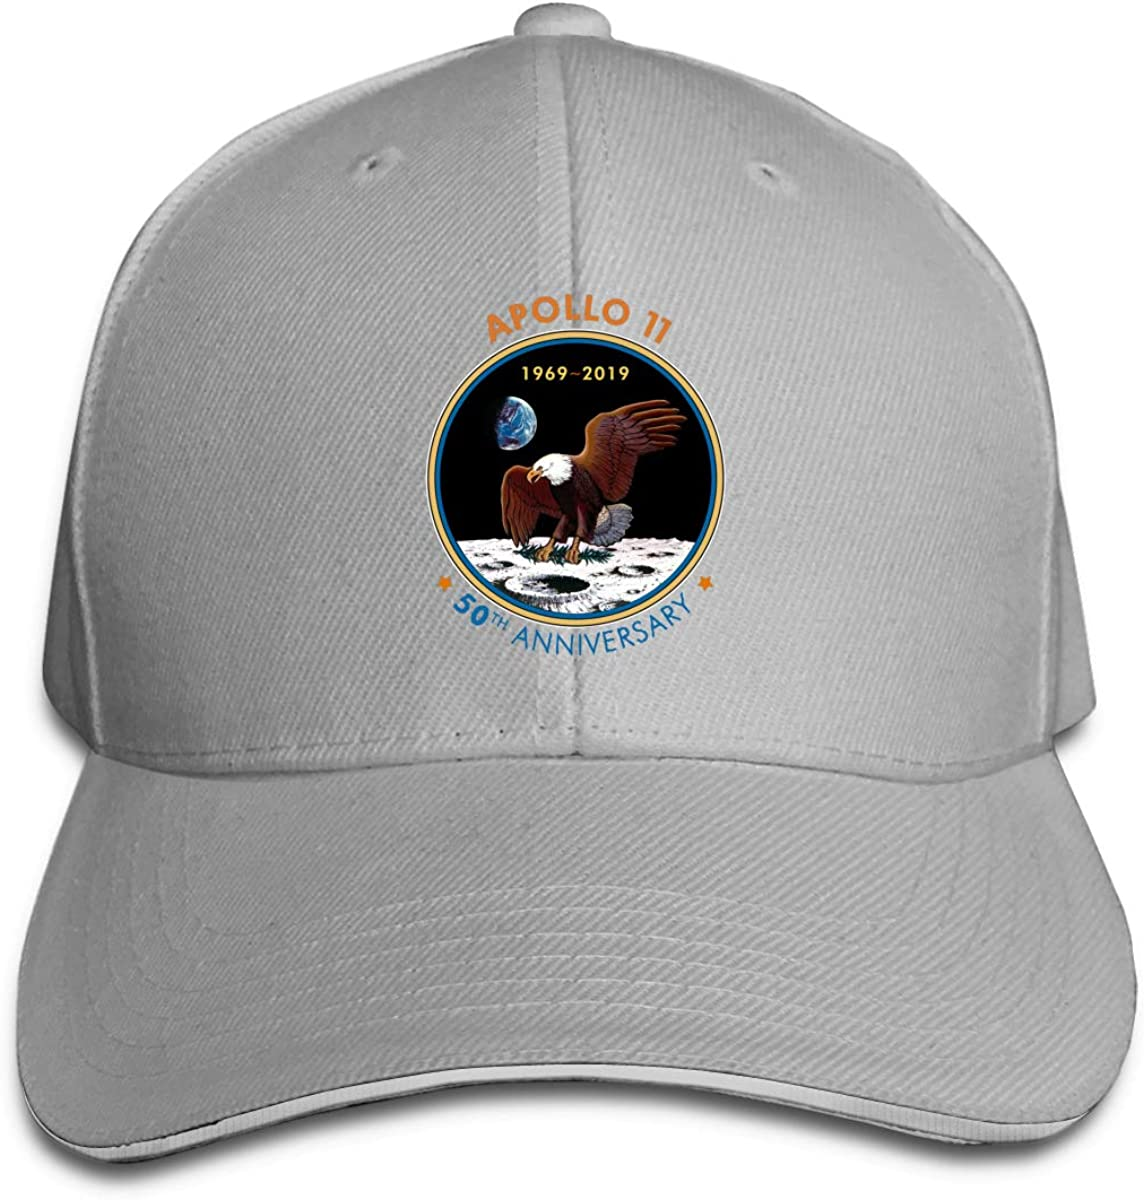 Apollo 11 50th Anniversary Unisex Twill Adjustable Sports Hat